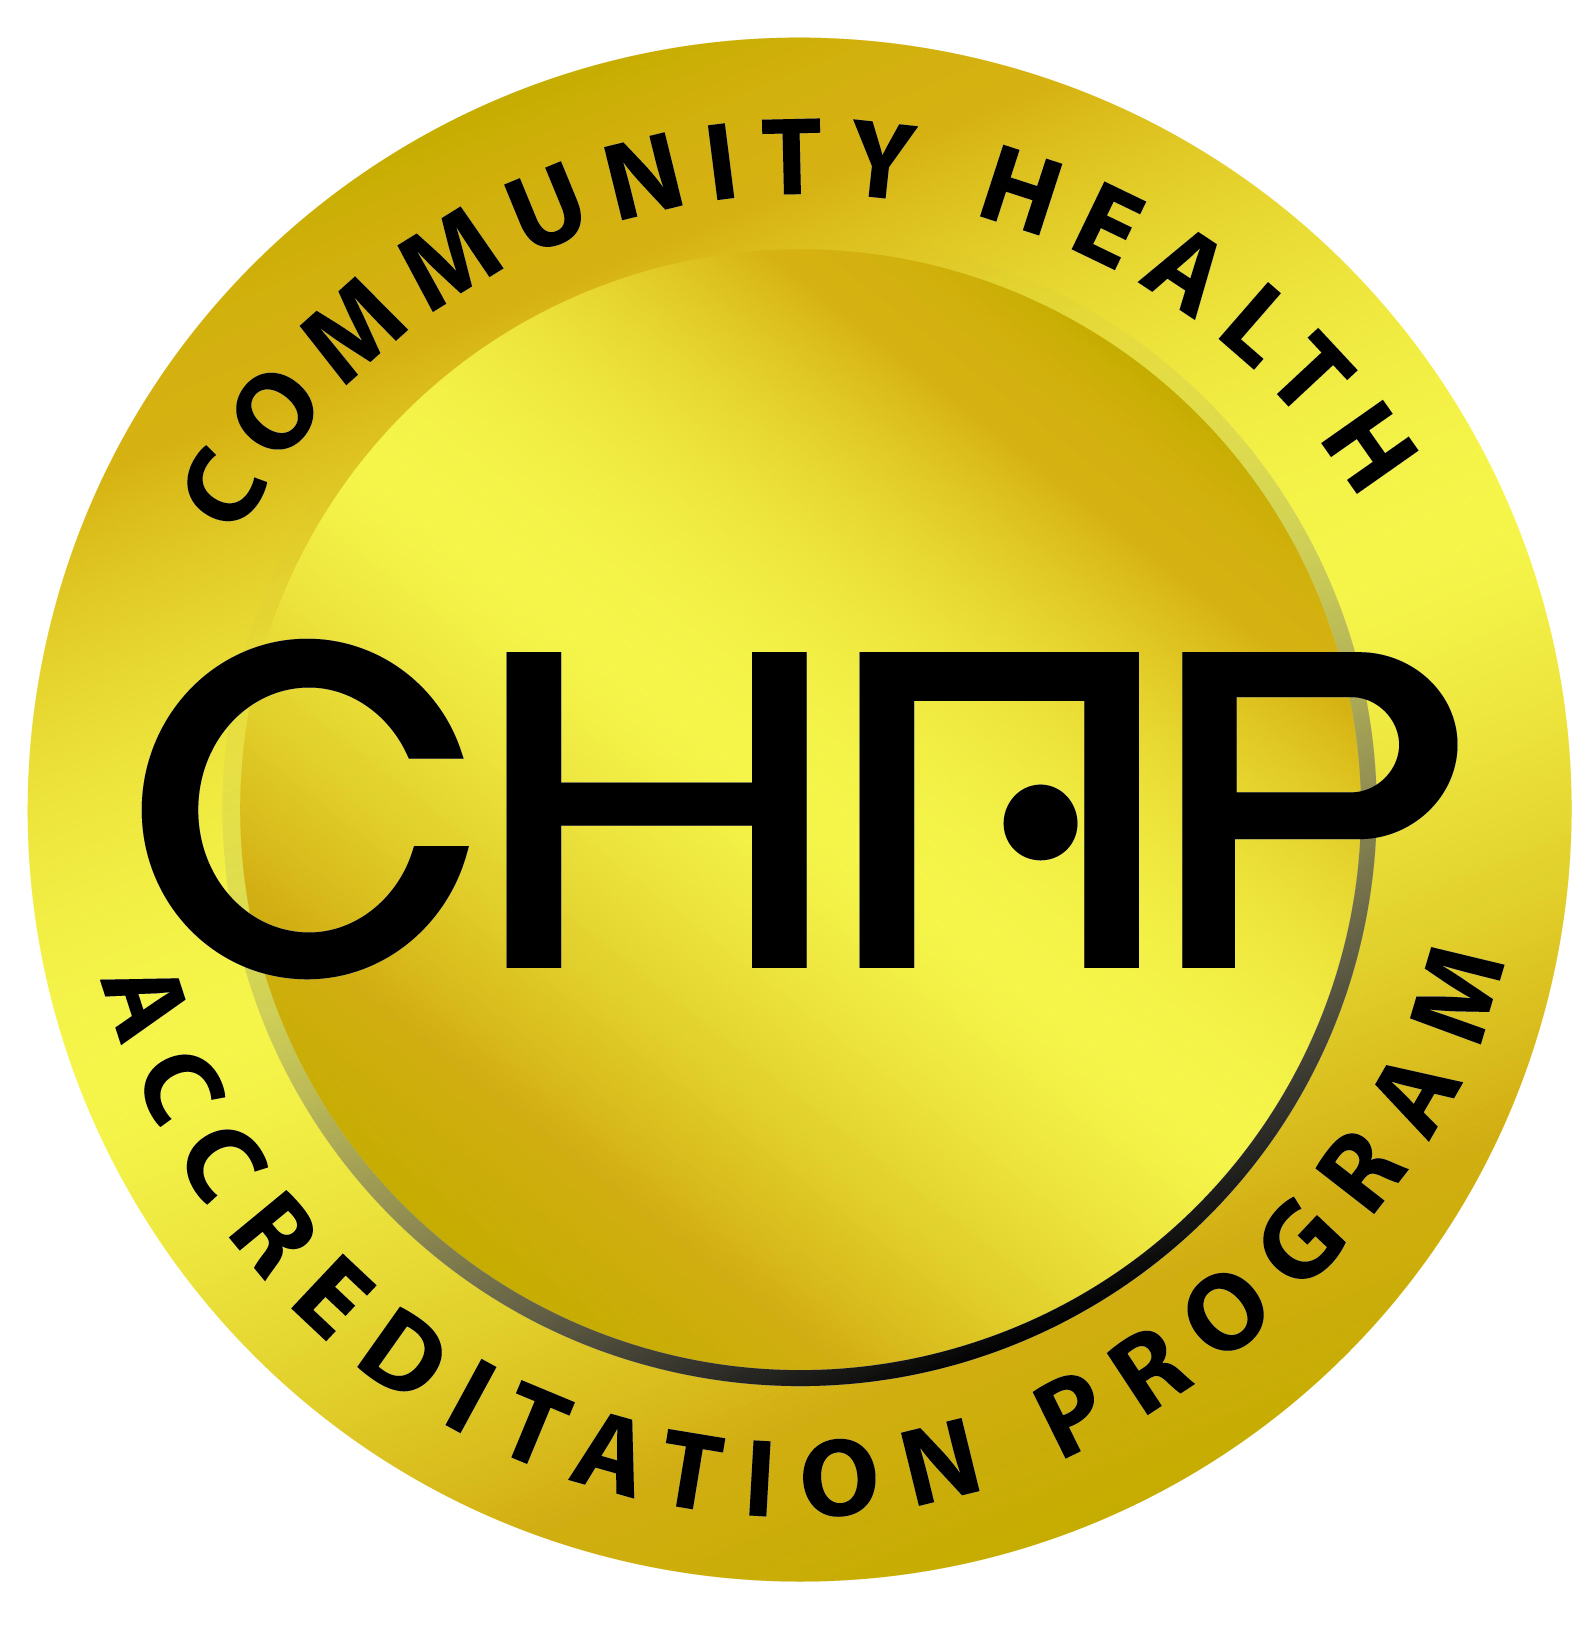 State of michigan adds ameristaff nursing services as its first ameristaff nursing services is approved by the community health accreditation program chapchap logo xflitez Image collections